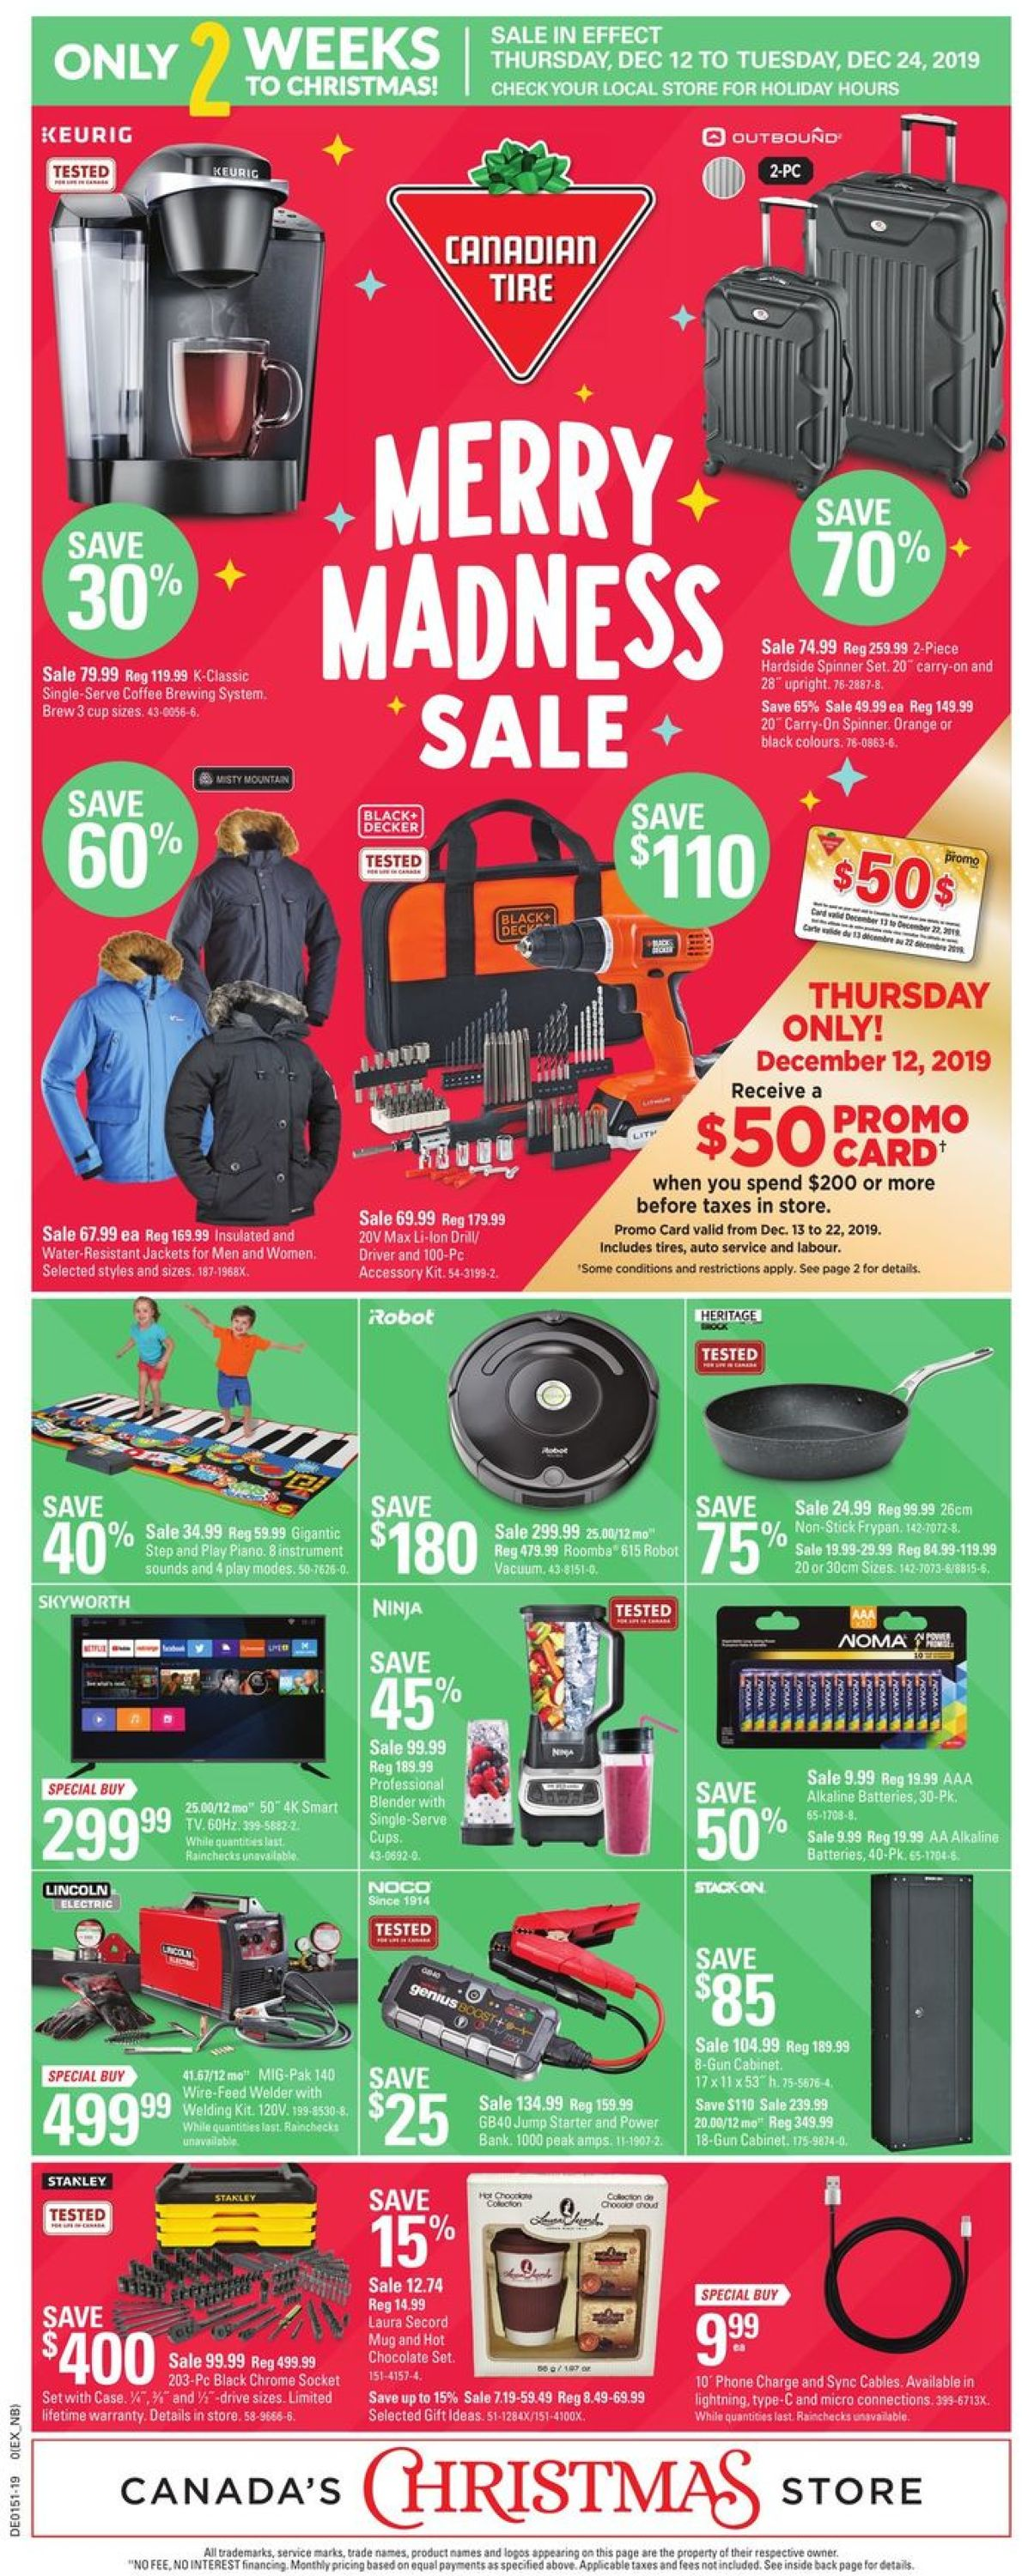 Canadian Tire - Holiday 2019 Flyer